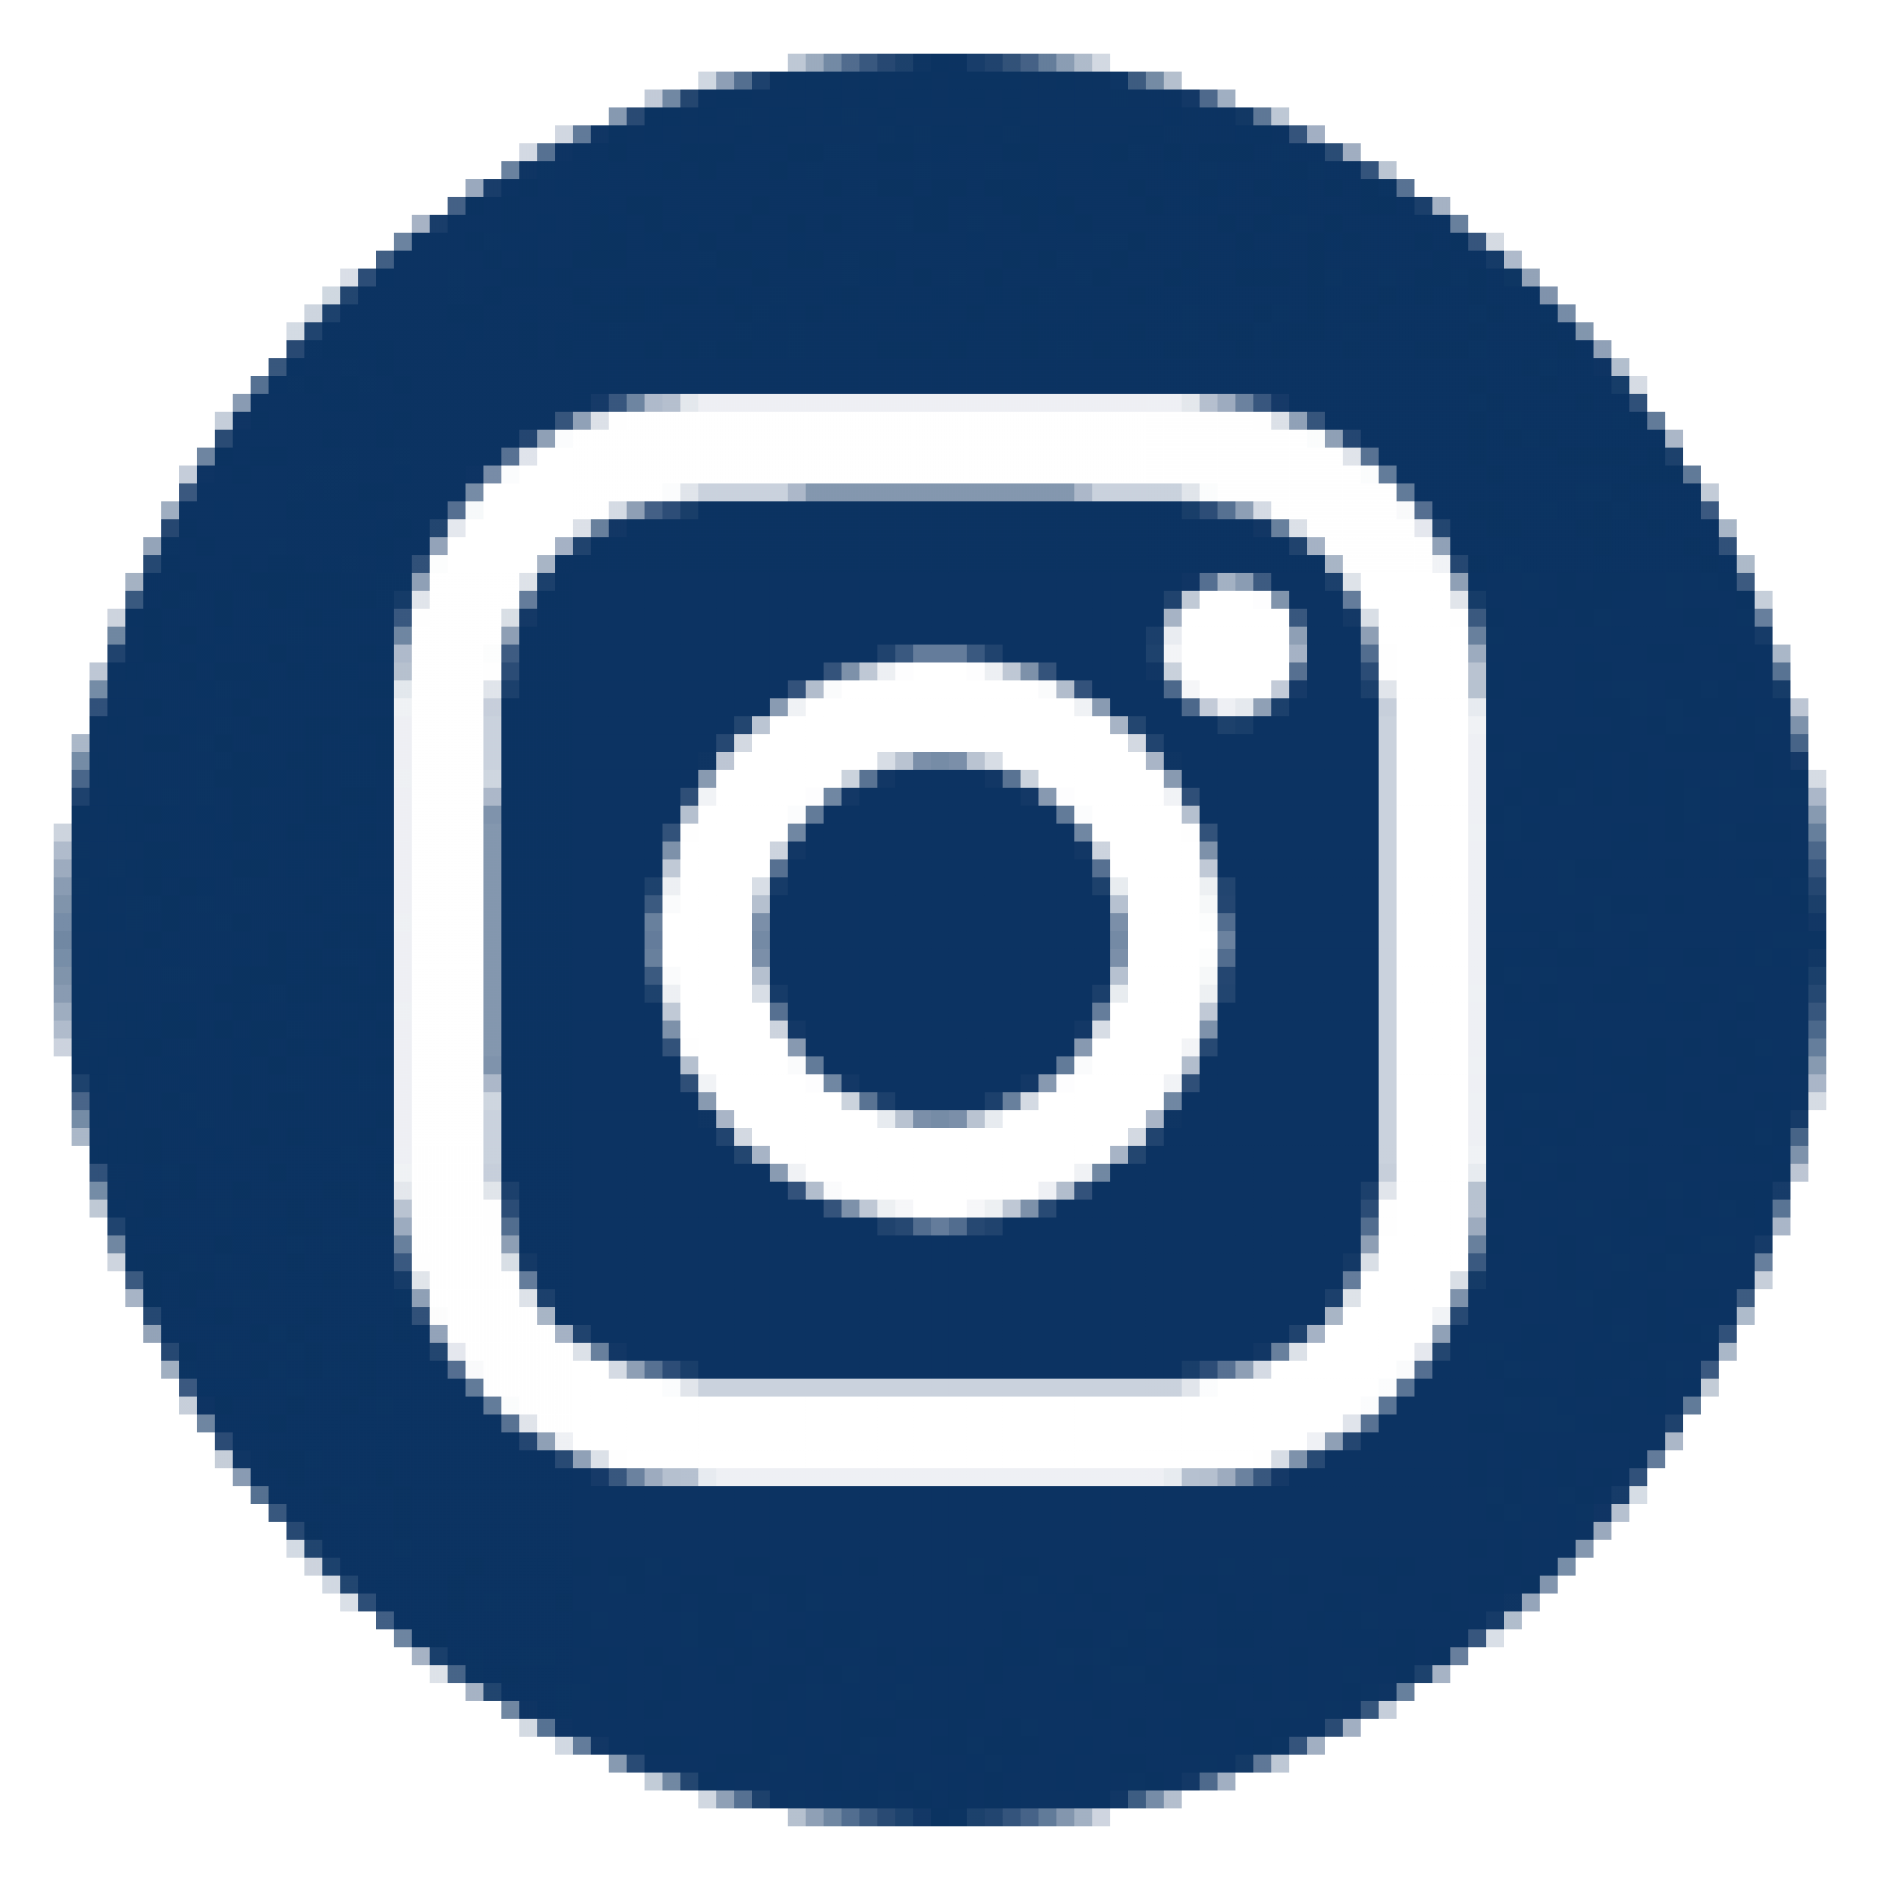 instagram_icon.png.